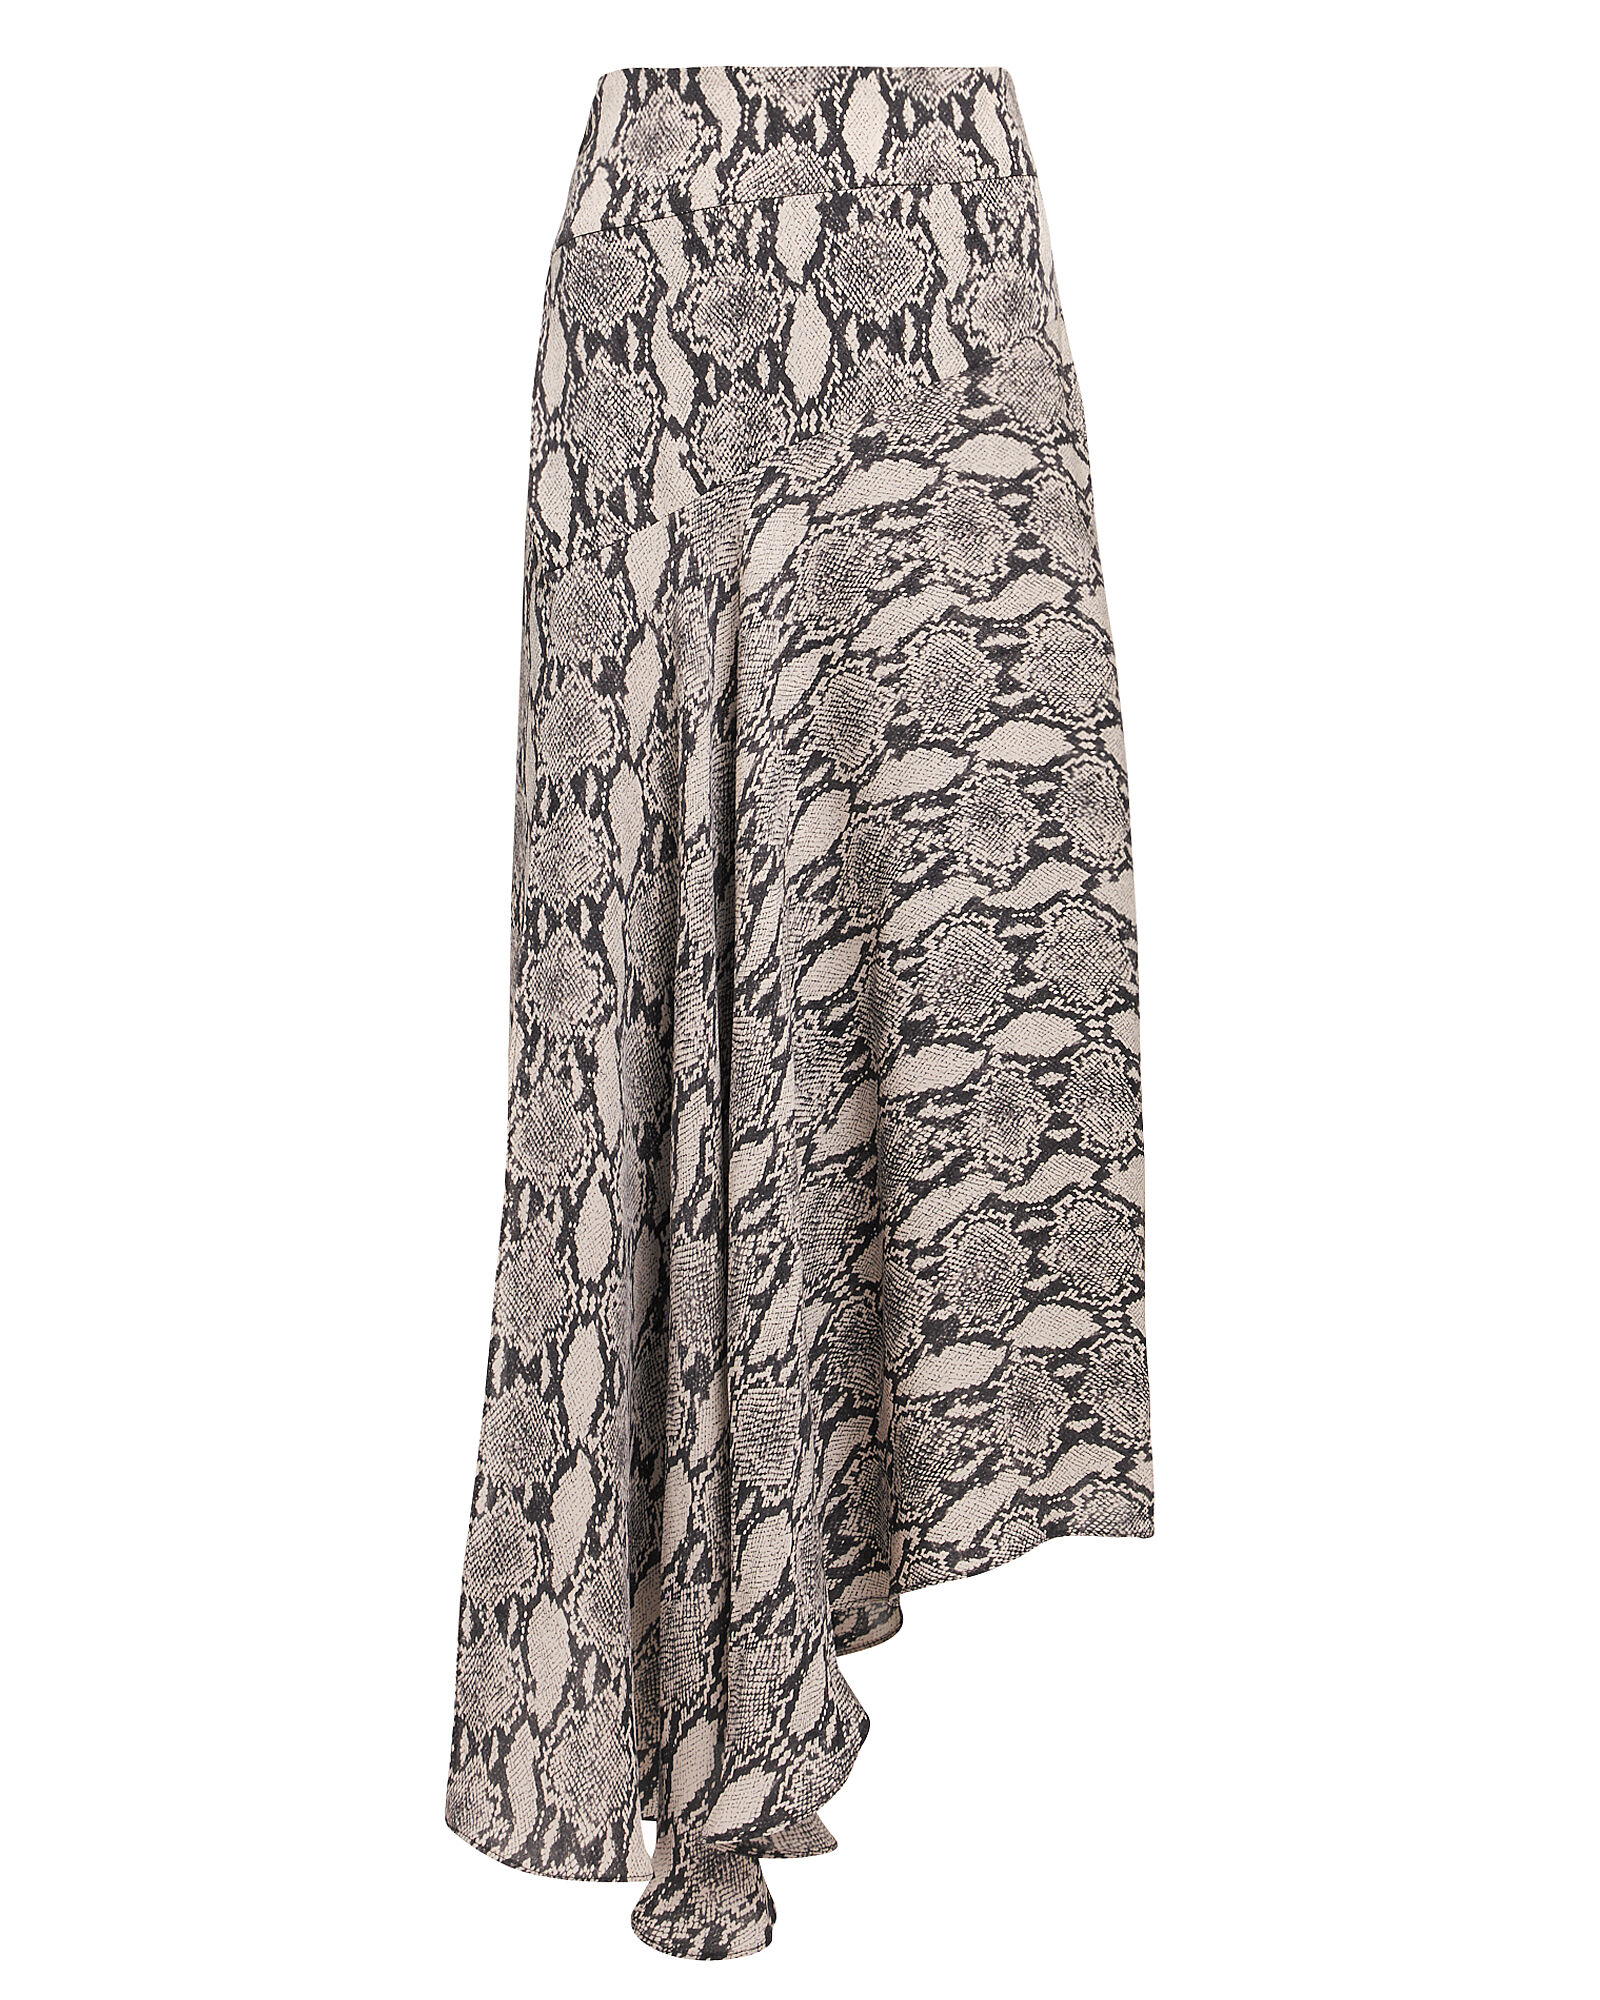 Lev Snake Print Midi Skirt, BROWN, hi-res